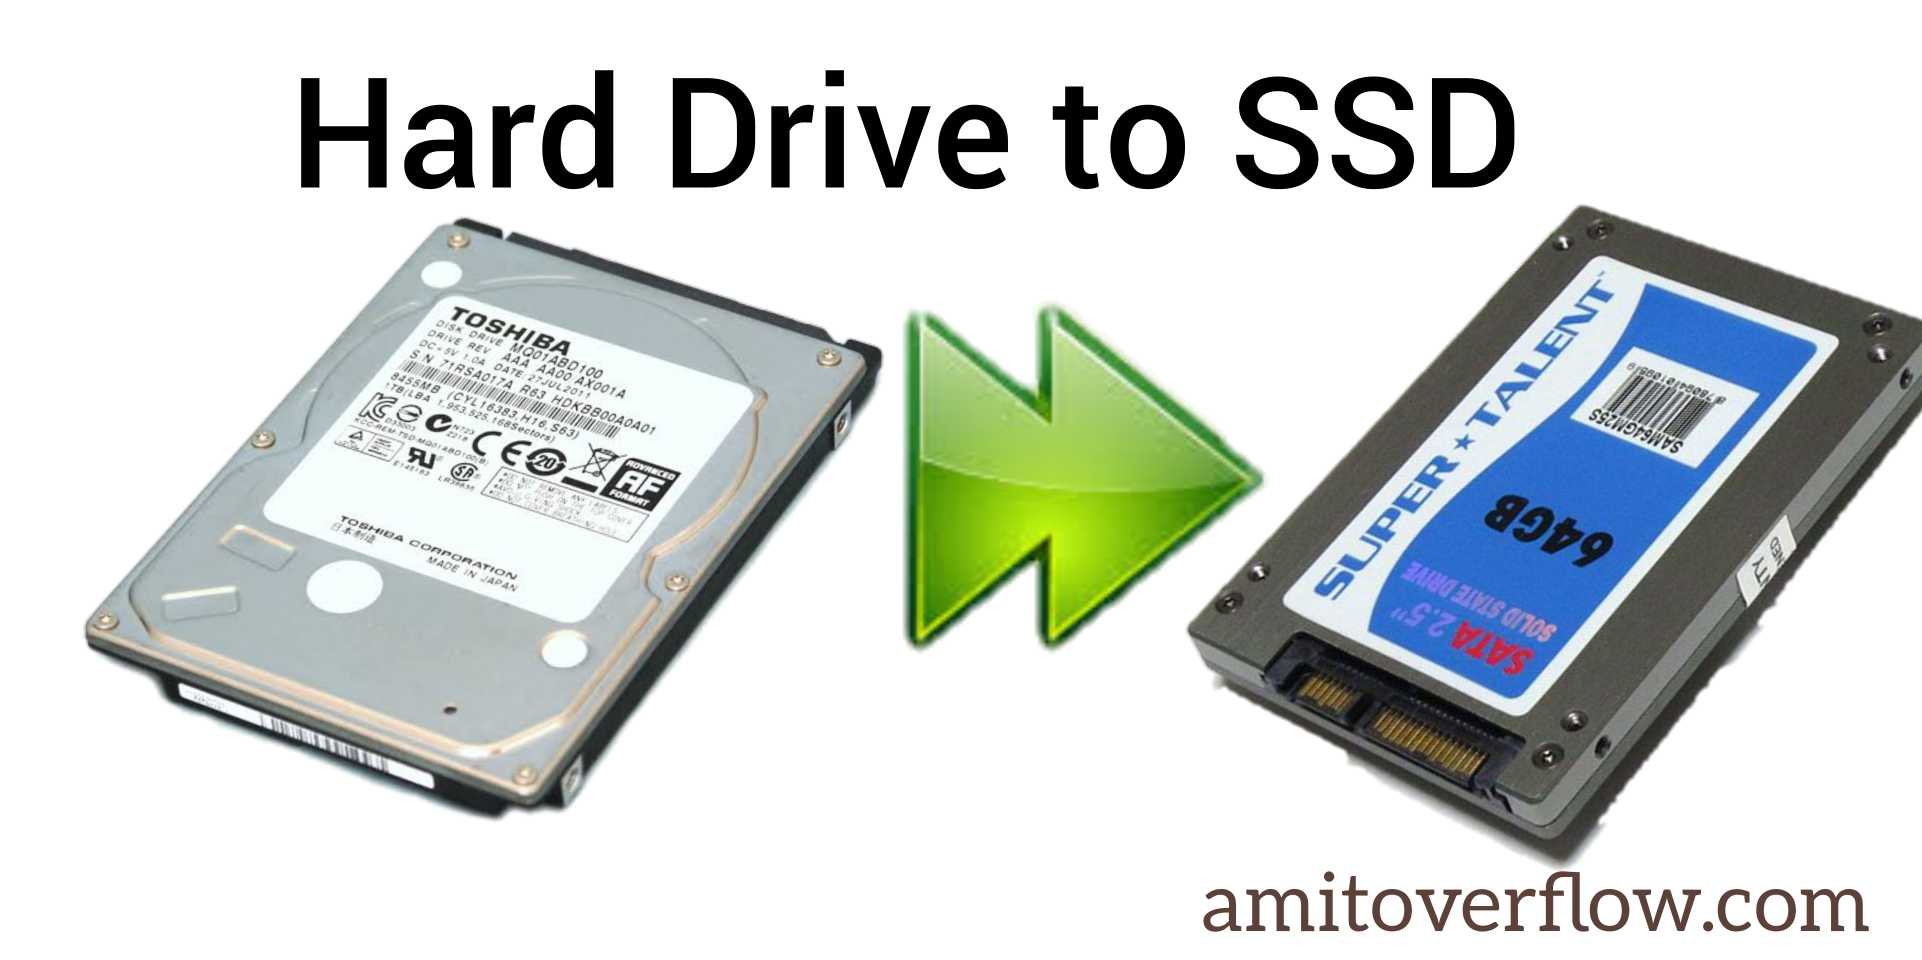 Hard drive to SSD for Android studio